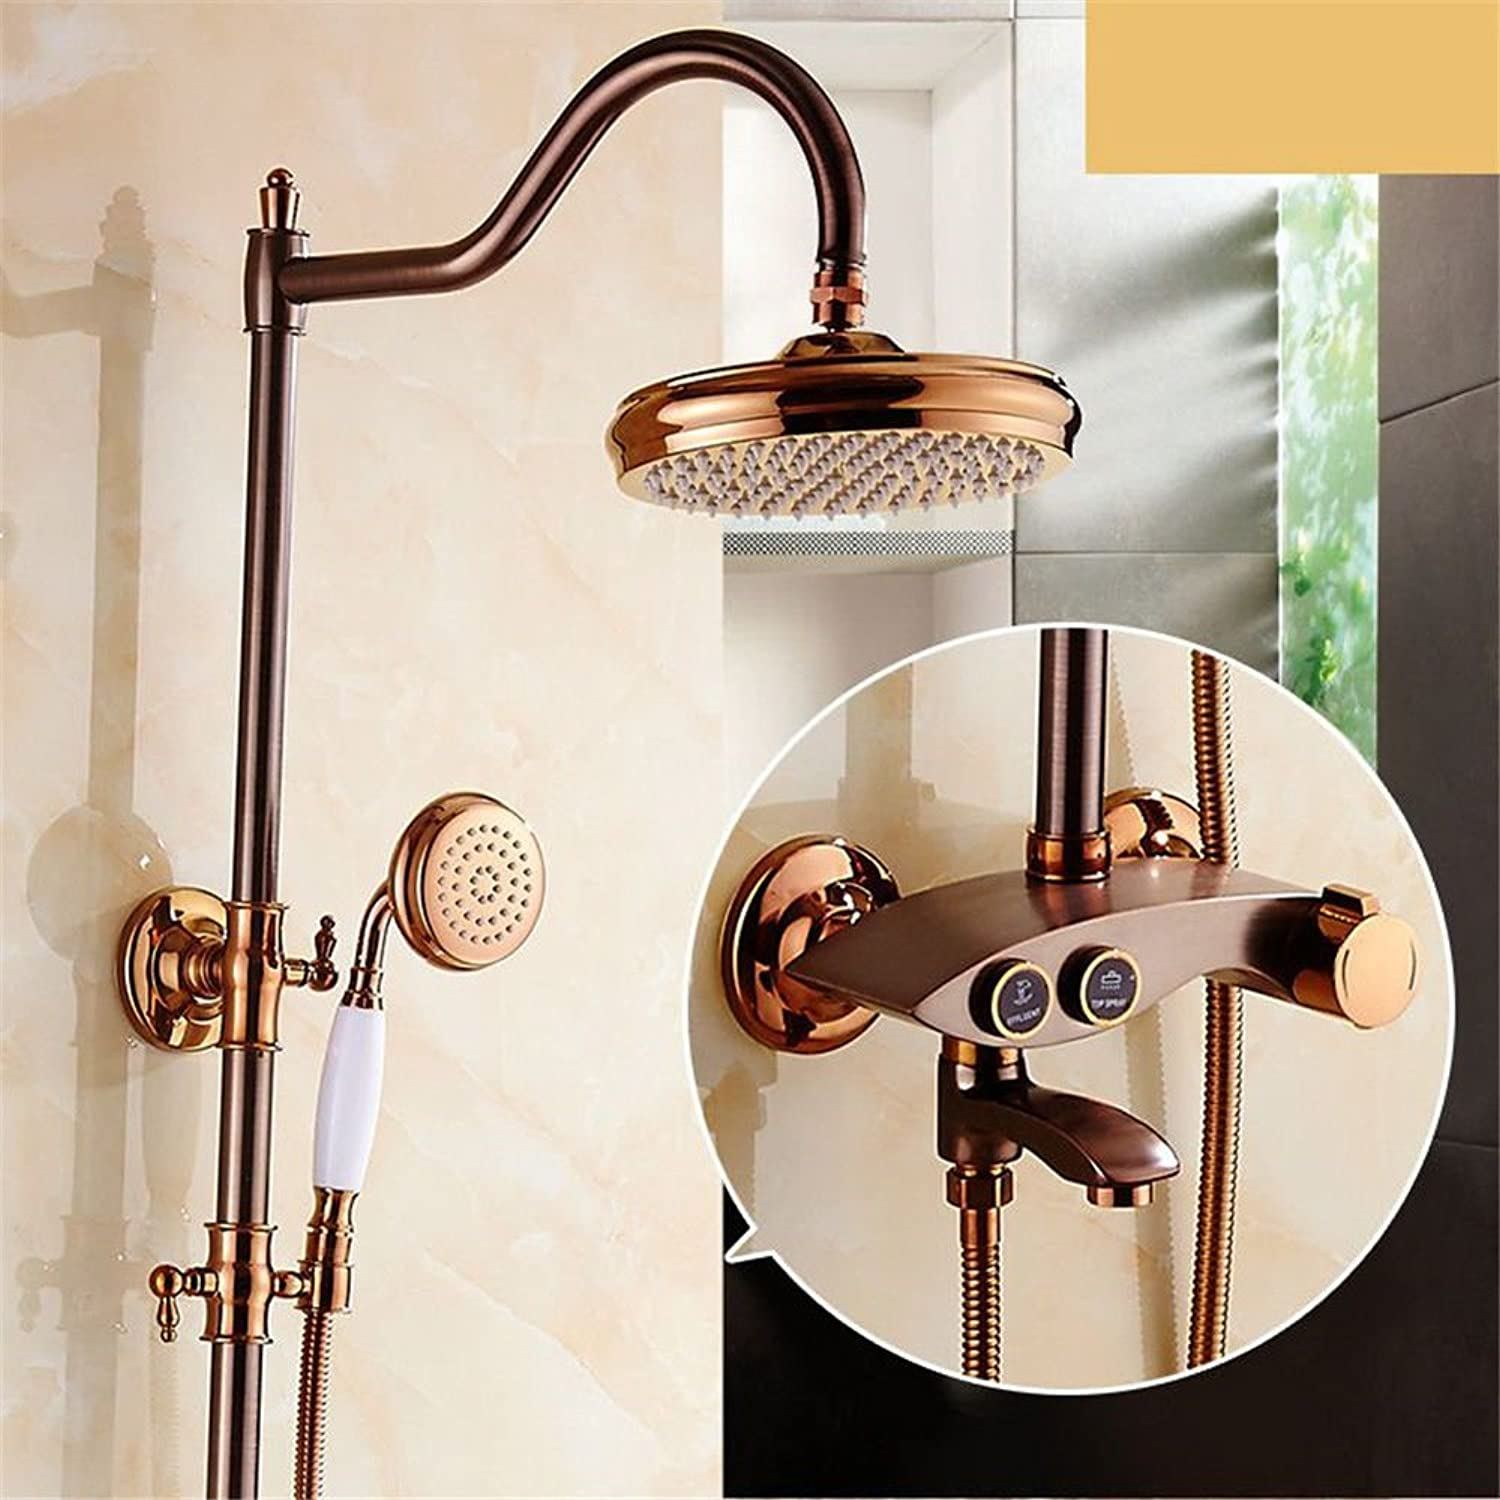 Hlluya Professional Sink Mixer Tap Kitchen Faucet Natural jade shower set pink gold brown full copper antique and cold water faucet shower system,